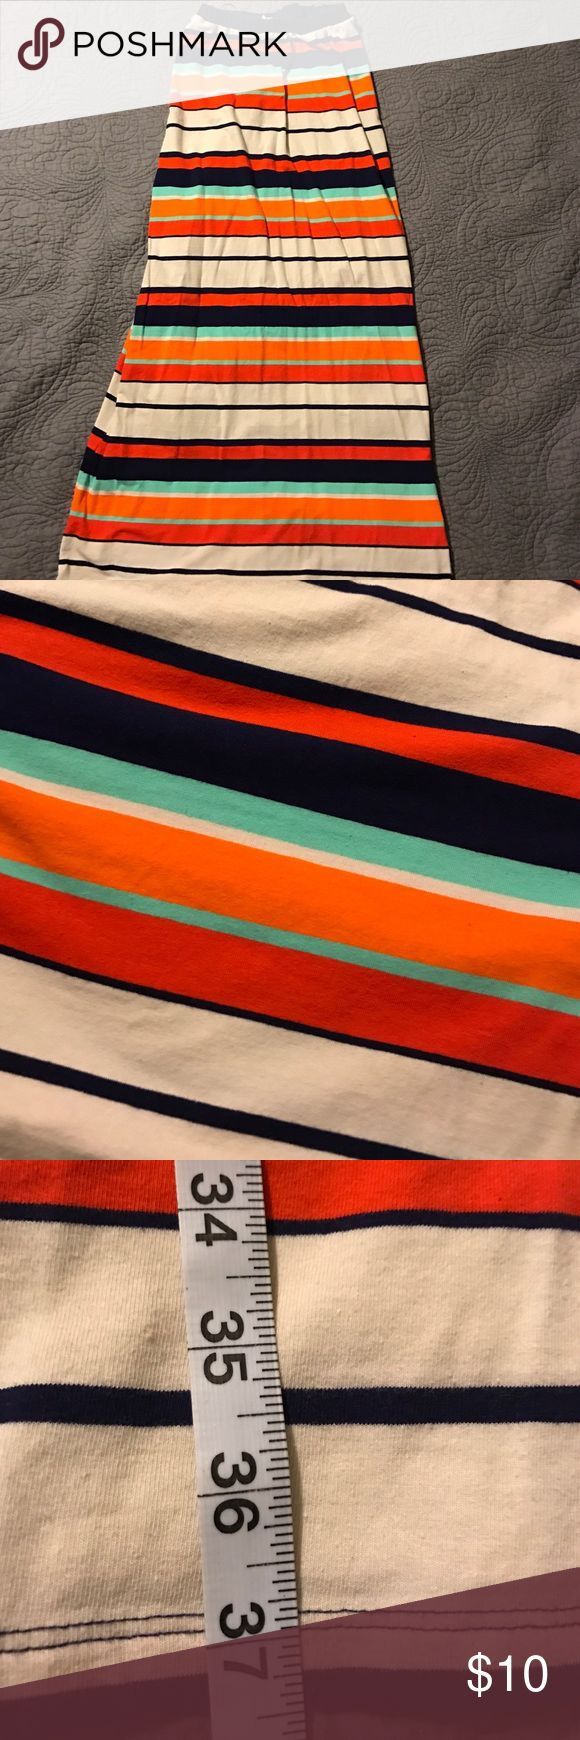 Olive and Oak striped maxi skirt Preppy Olive and Oak maxi with coral, mint, navy & Crete horizontal stripes. Cotton- very soft! Good condition, no imperfections. Measurement shown is from waist to hem. Skirts Maxi